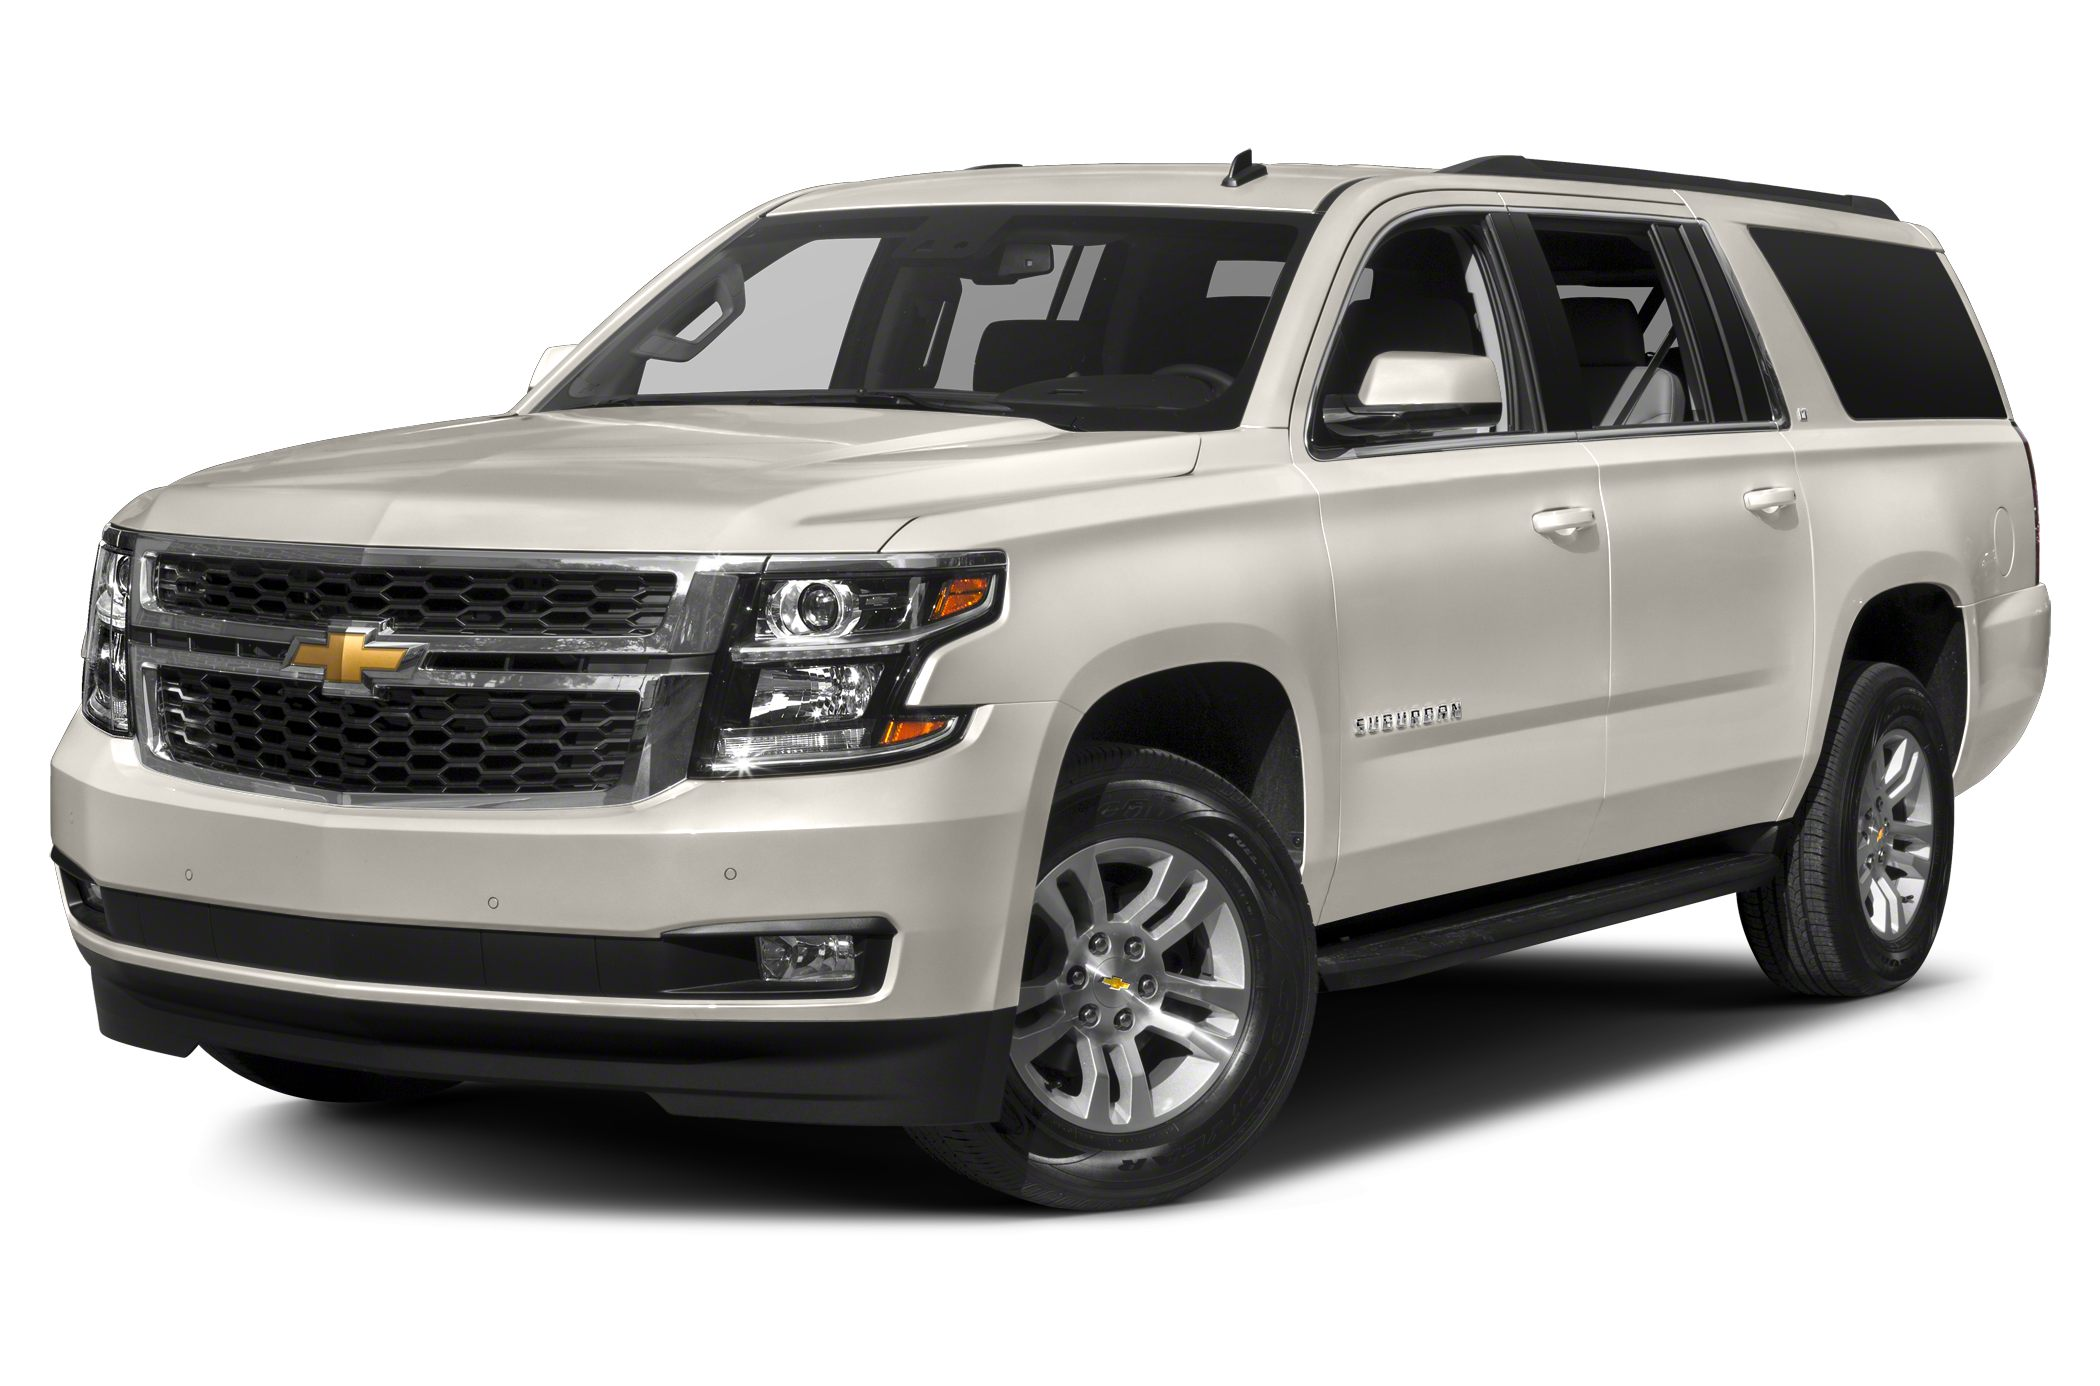 2015 Chevrolet Suburban 1500 LT SUV for sale in Morganton for $51,000 with 21,872 miles.